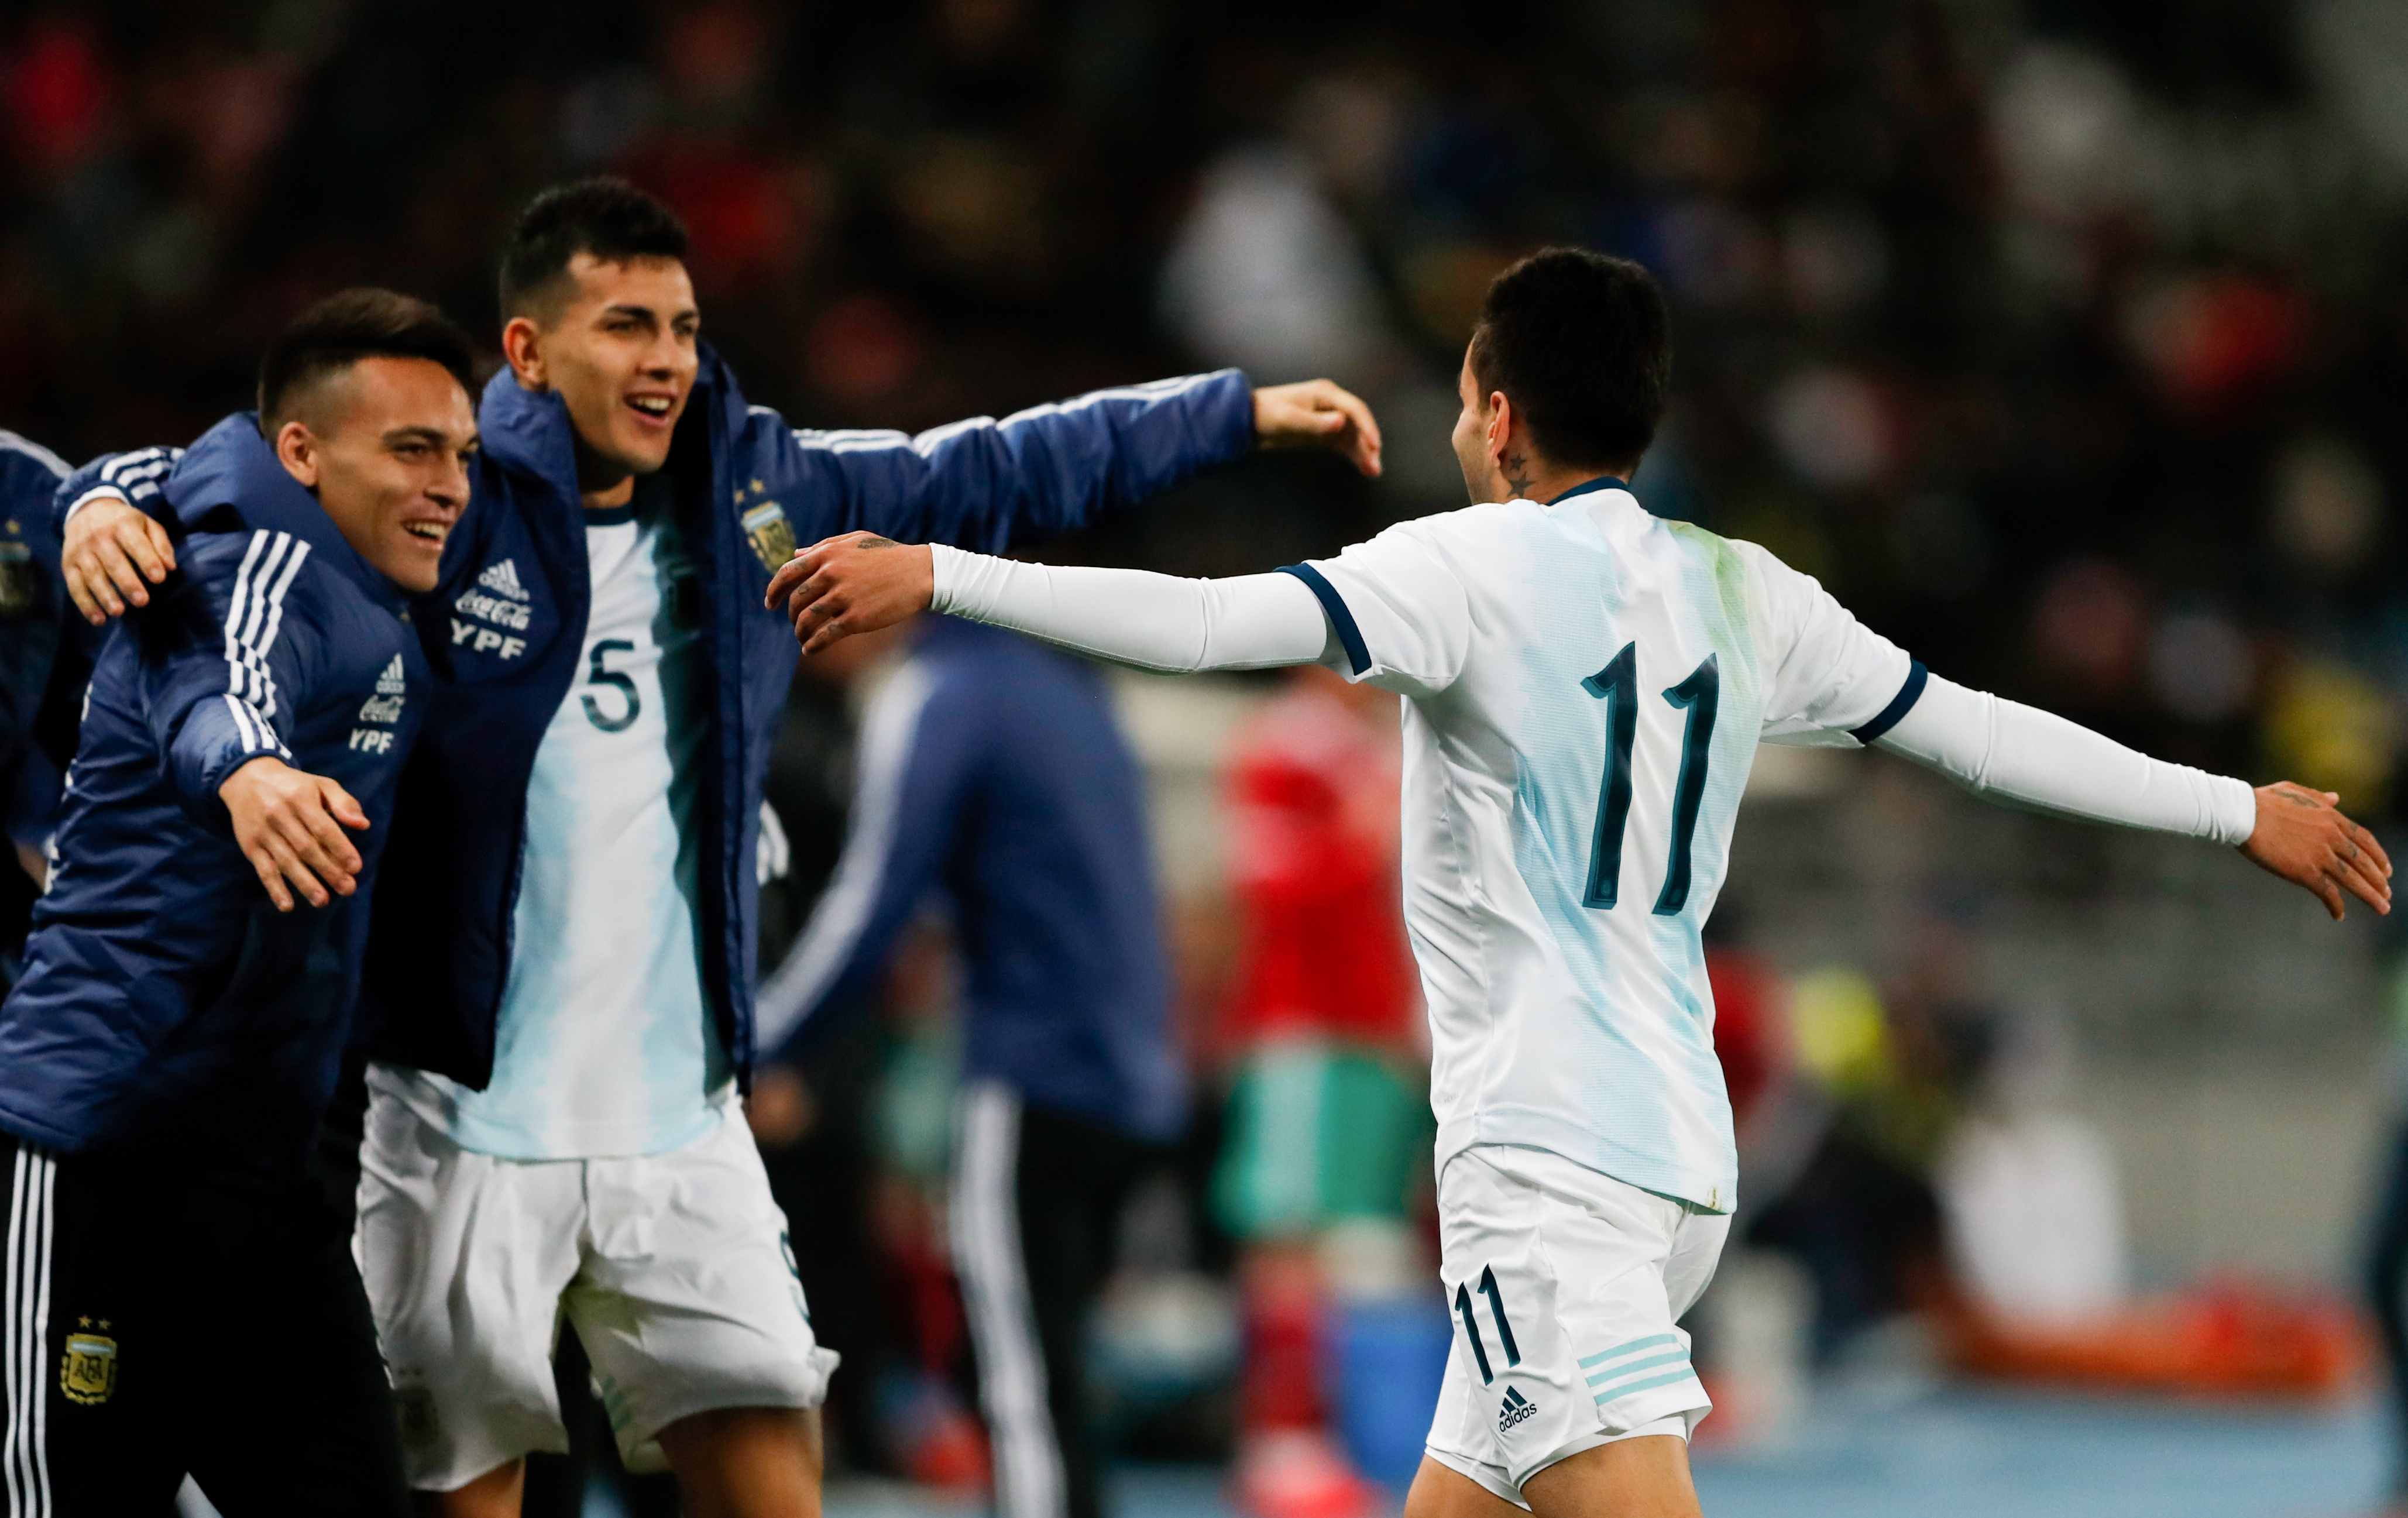 Argentina players celebrate their win. Image: PA Images